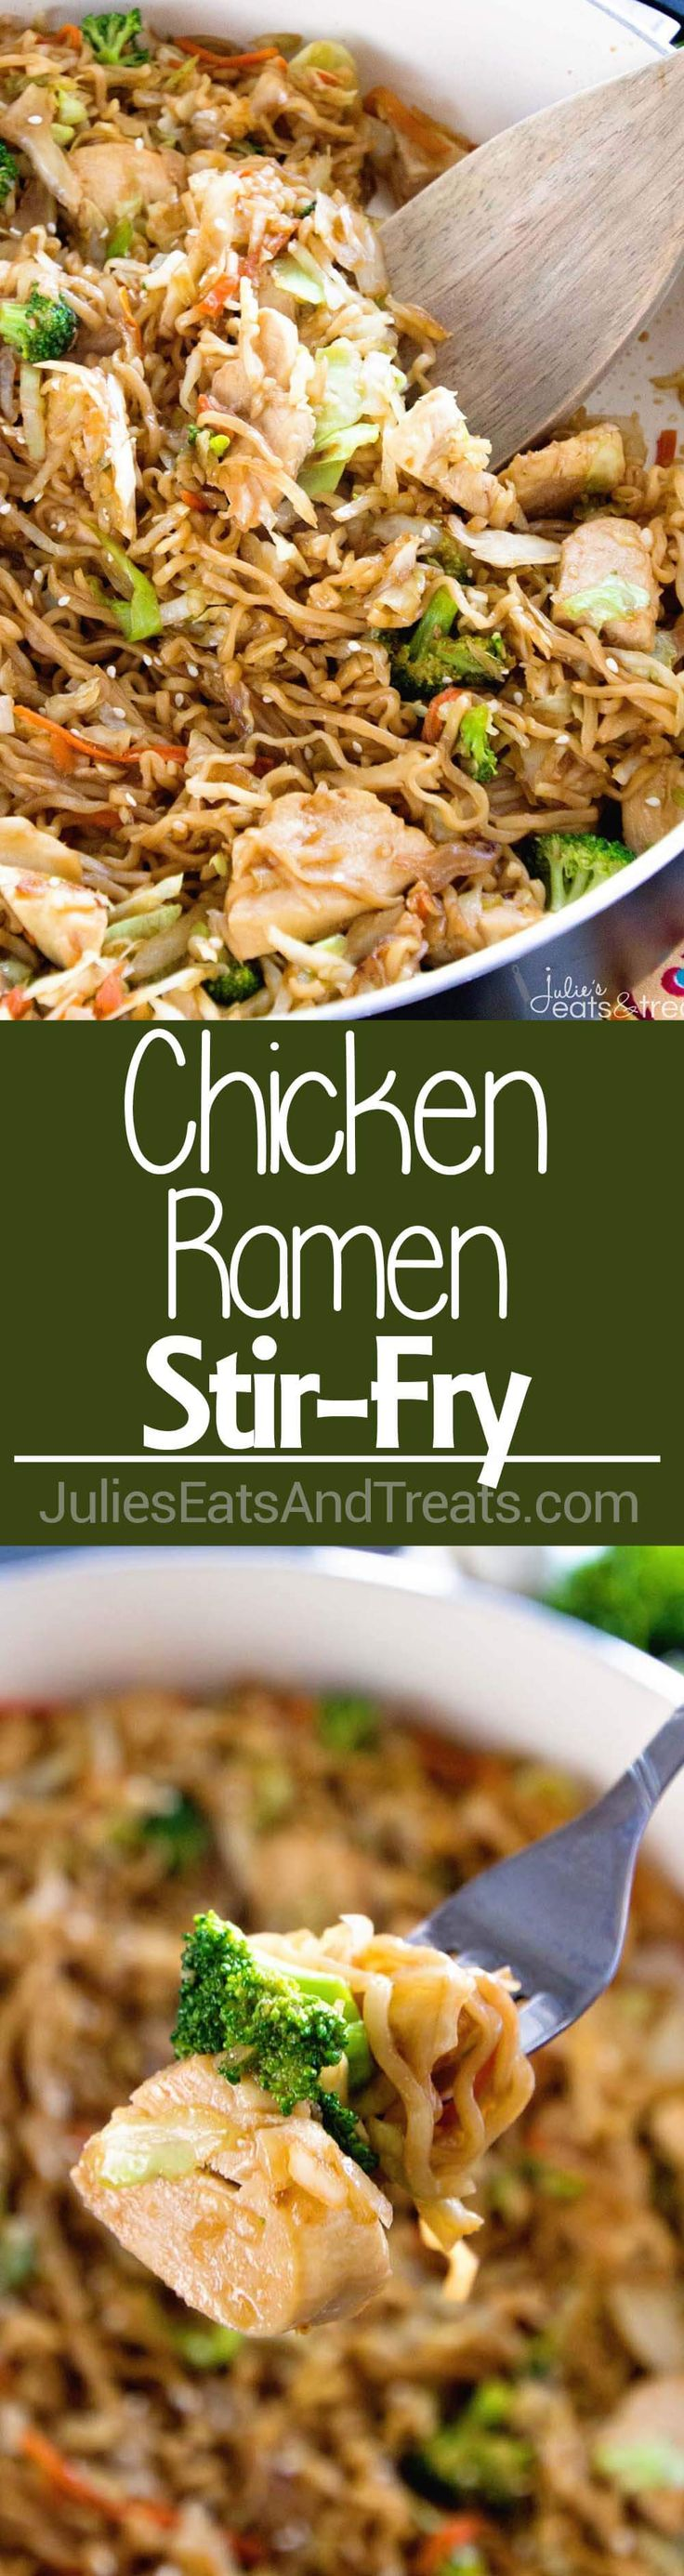 Chicken Ramen Stir-Fry ~ Easy, Delicious Weeknight Meal Loaded with Healthy Ingredients with the Addition of Ramen for a Fun Twist! On the Table in 30 Minutes! ~ http://www.julieseatsandtreats.com #TasteTruvia @truvia #ad